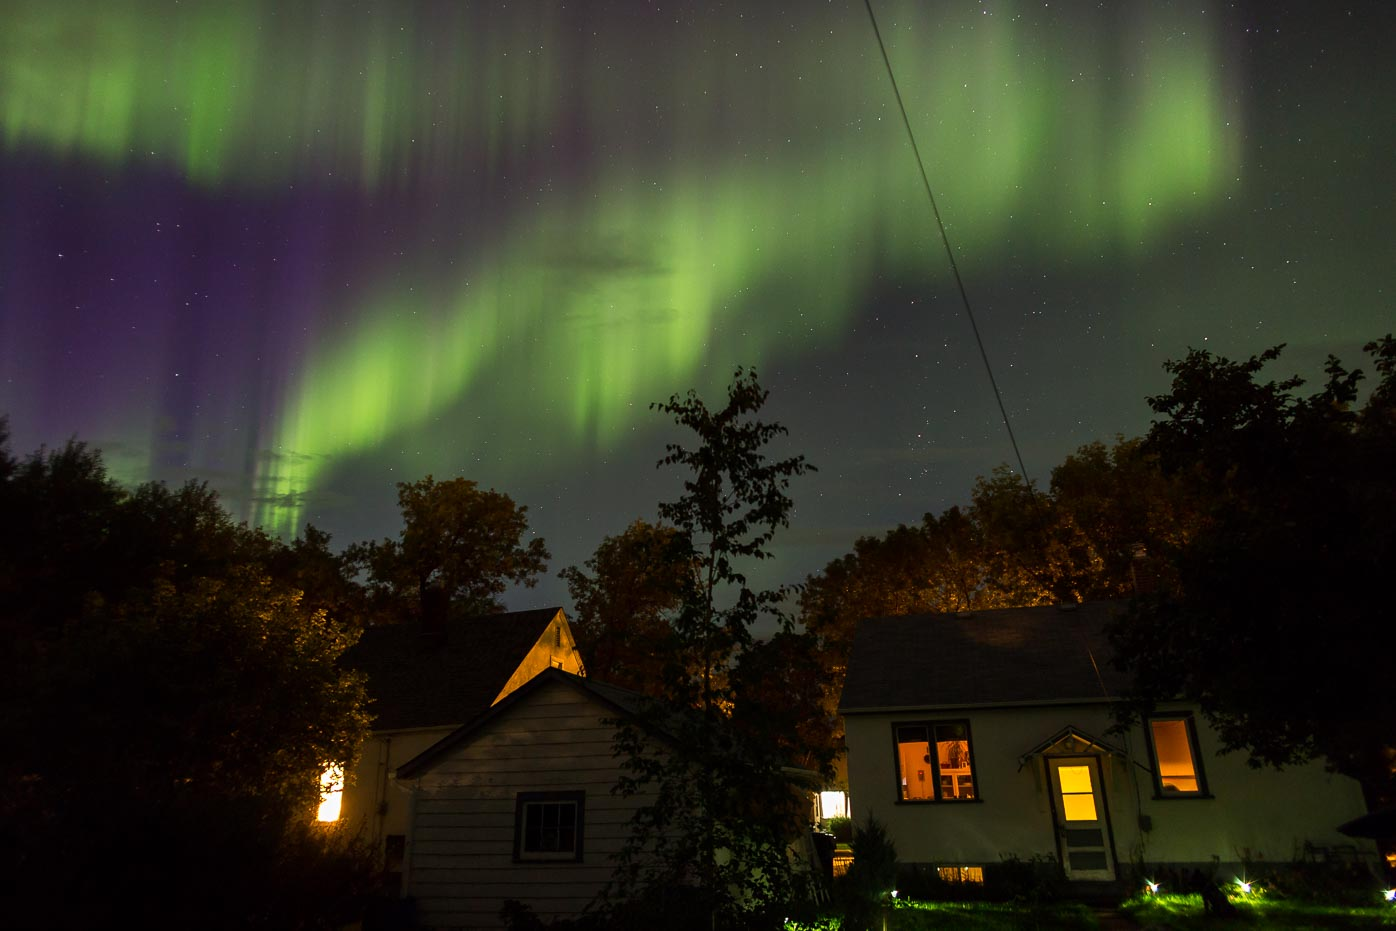 The Northern lights shining over the town of Dauphen – Photo:  Warren Justice